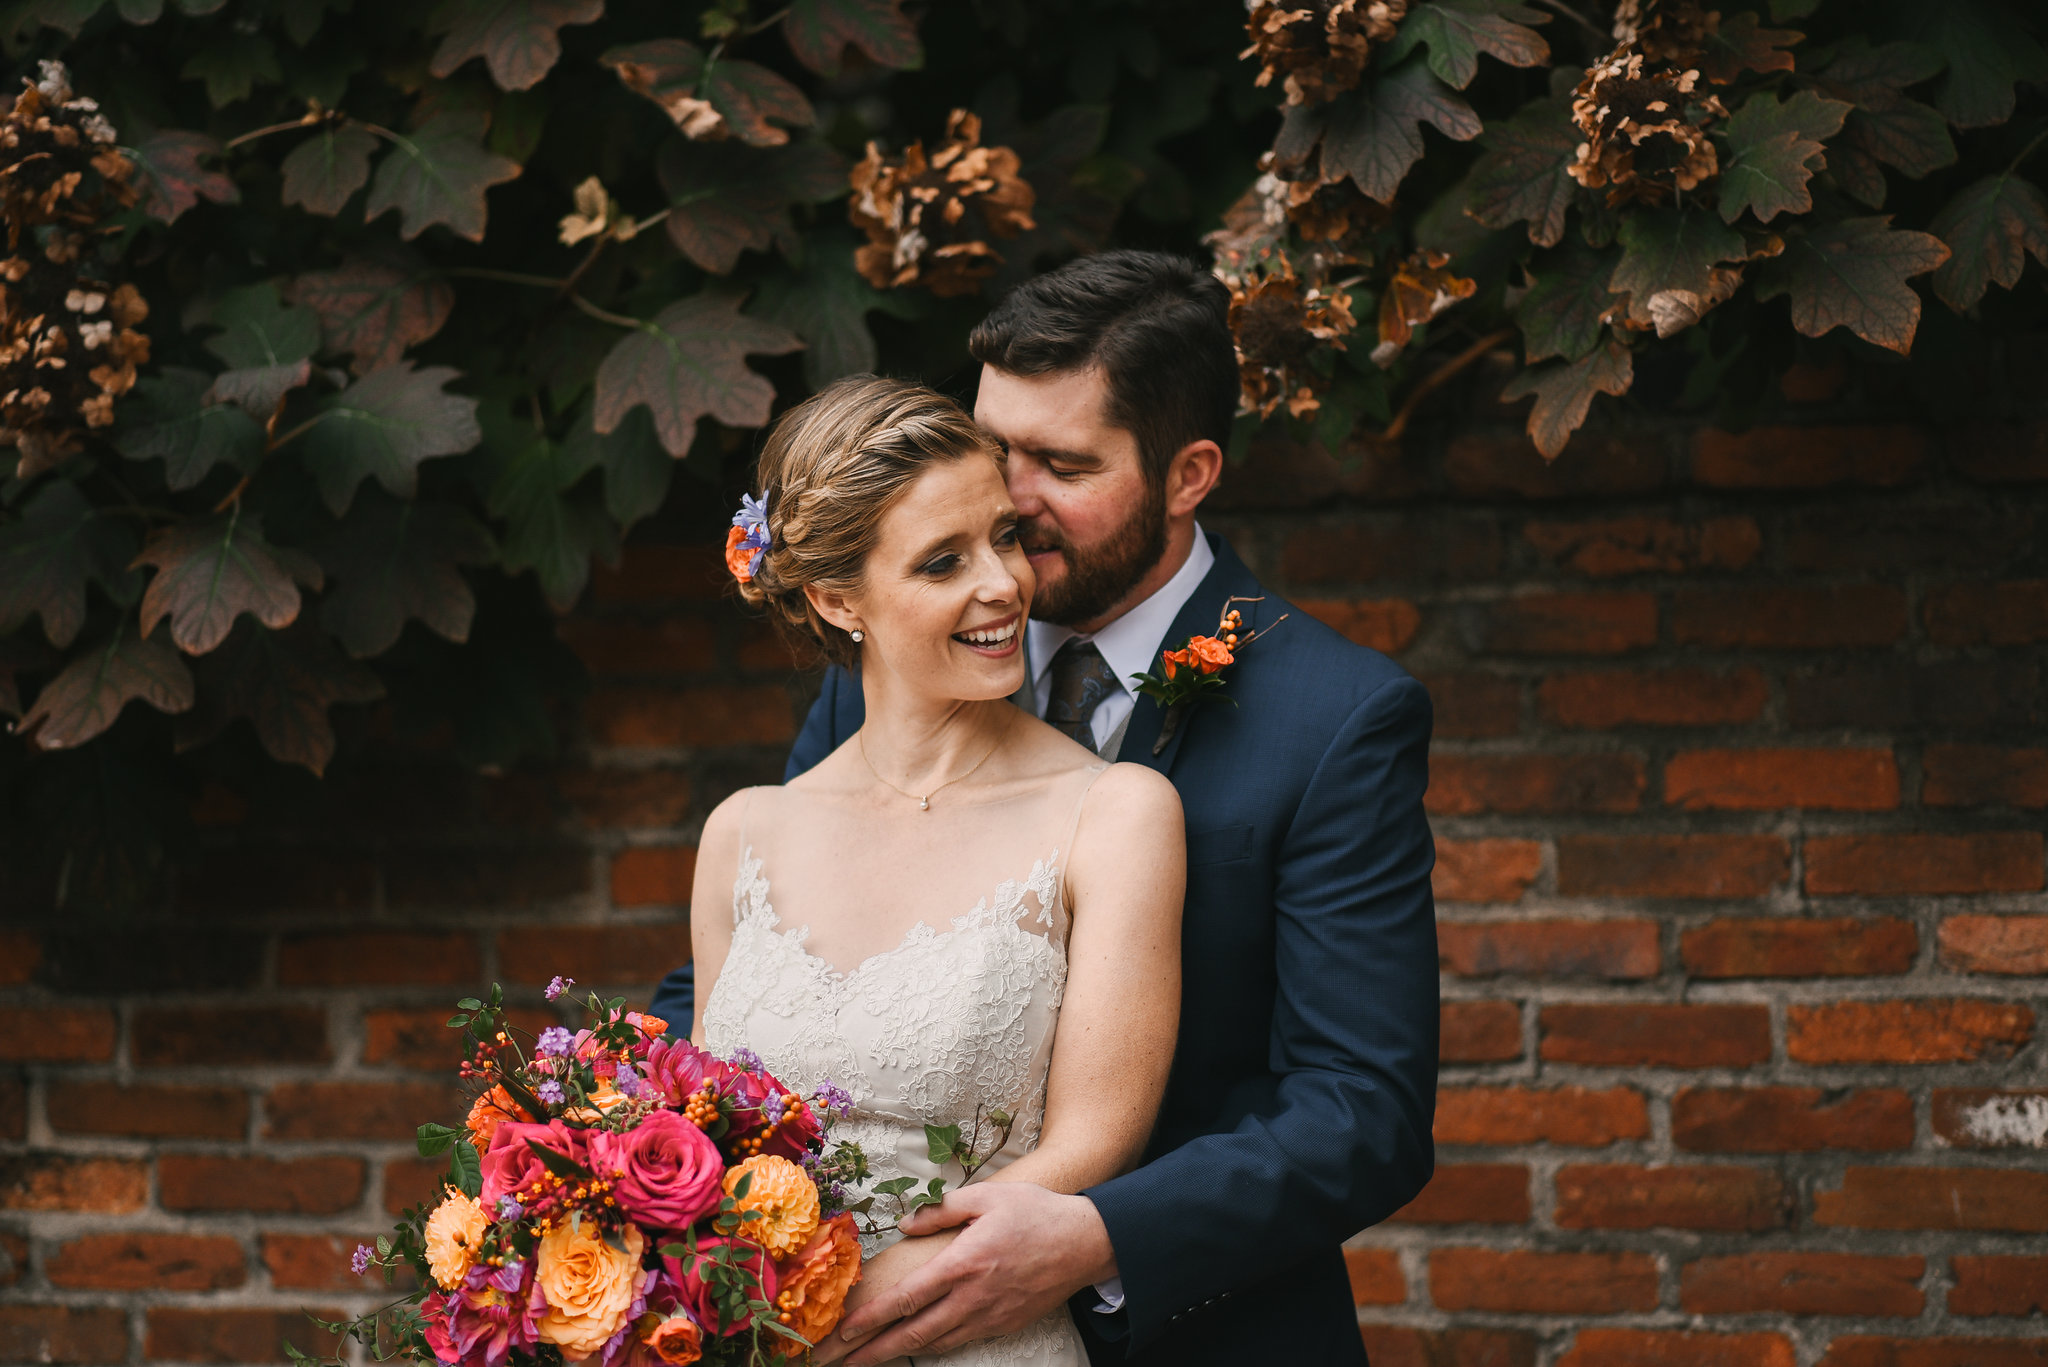 Alexandria, Virginia, Fall Wedding, Historic Wedding, Old Town, DC, Jos A. Bank Suit, Lian Carlo Wedding Dress, Lace Wedding Dress, Secluded Moments, The Enchanted Florist Bouquet